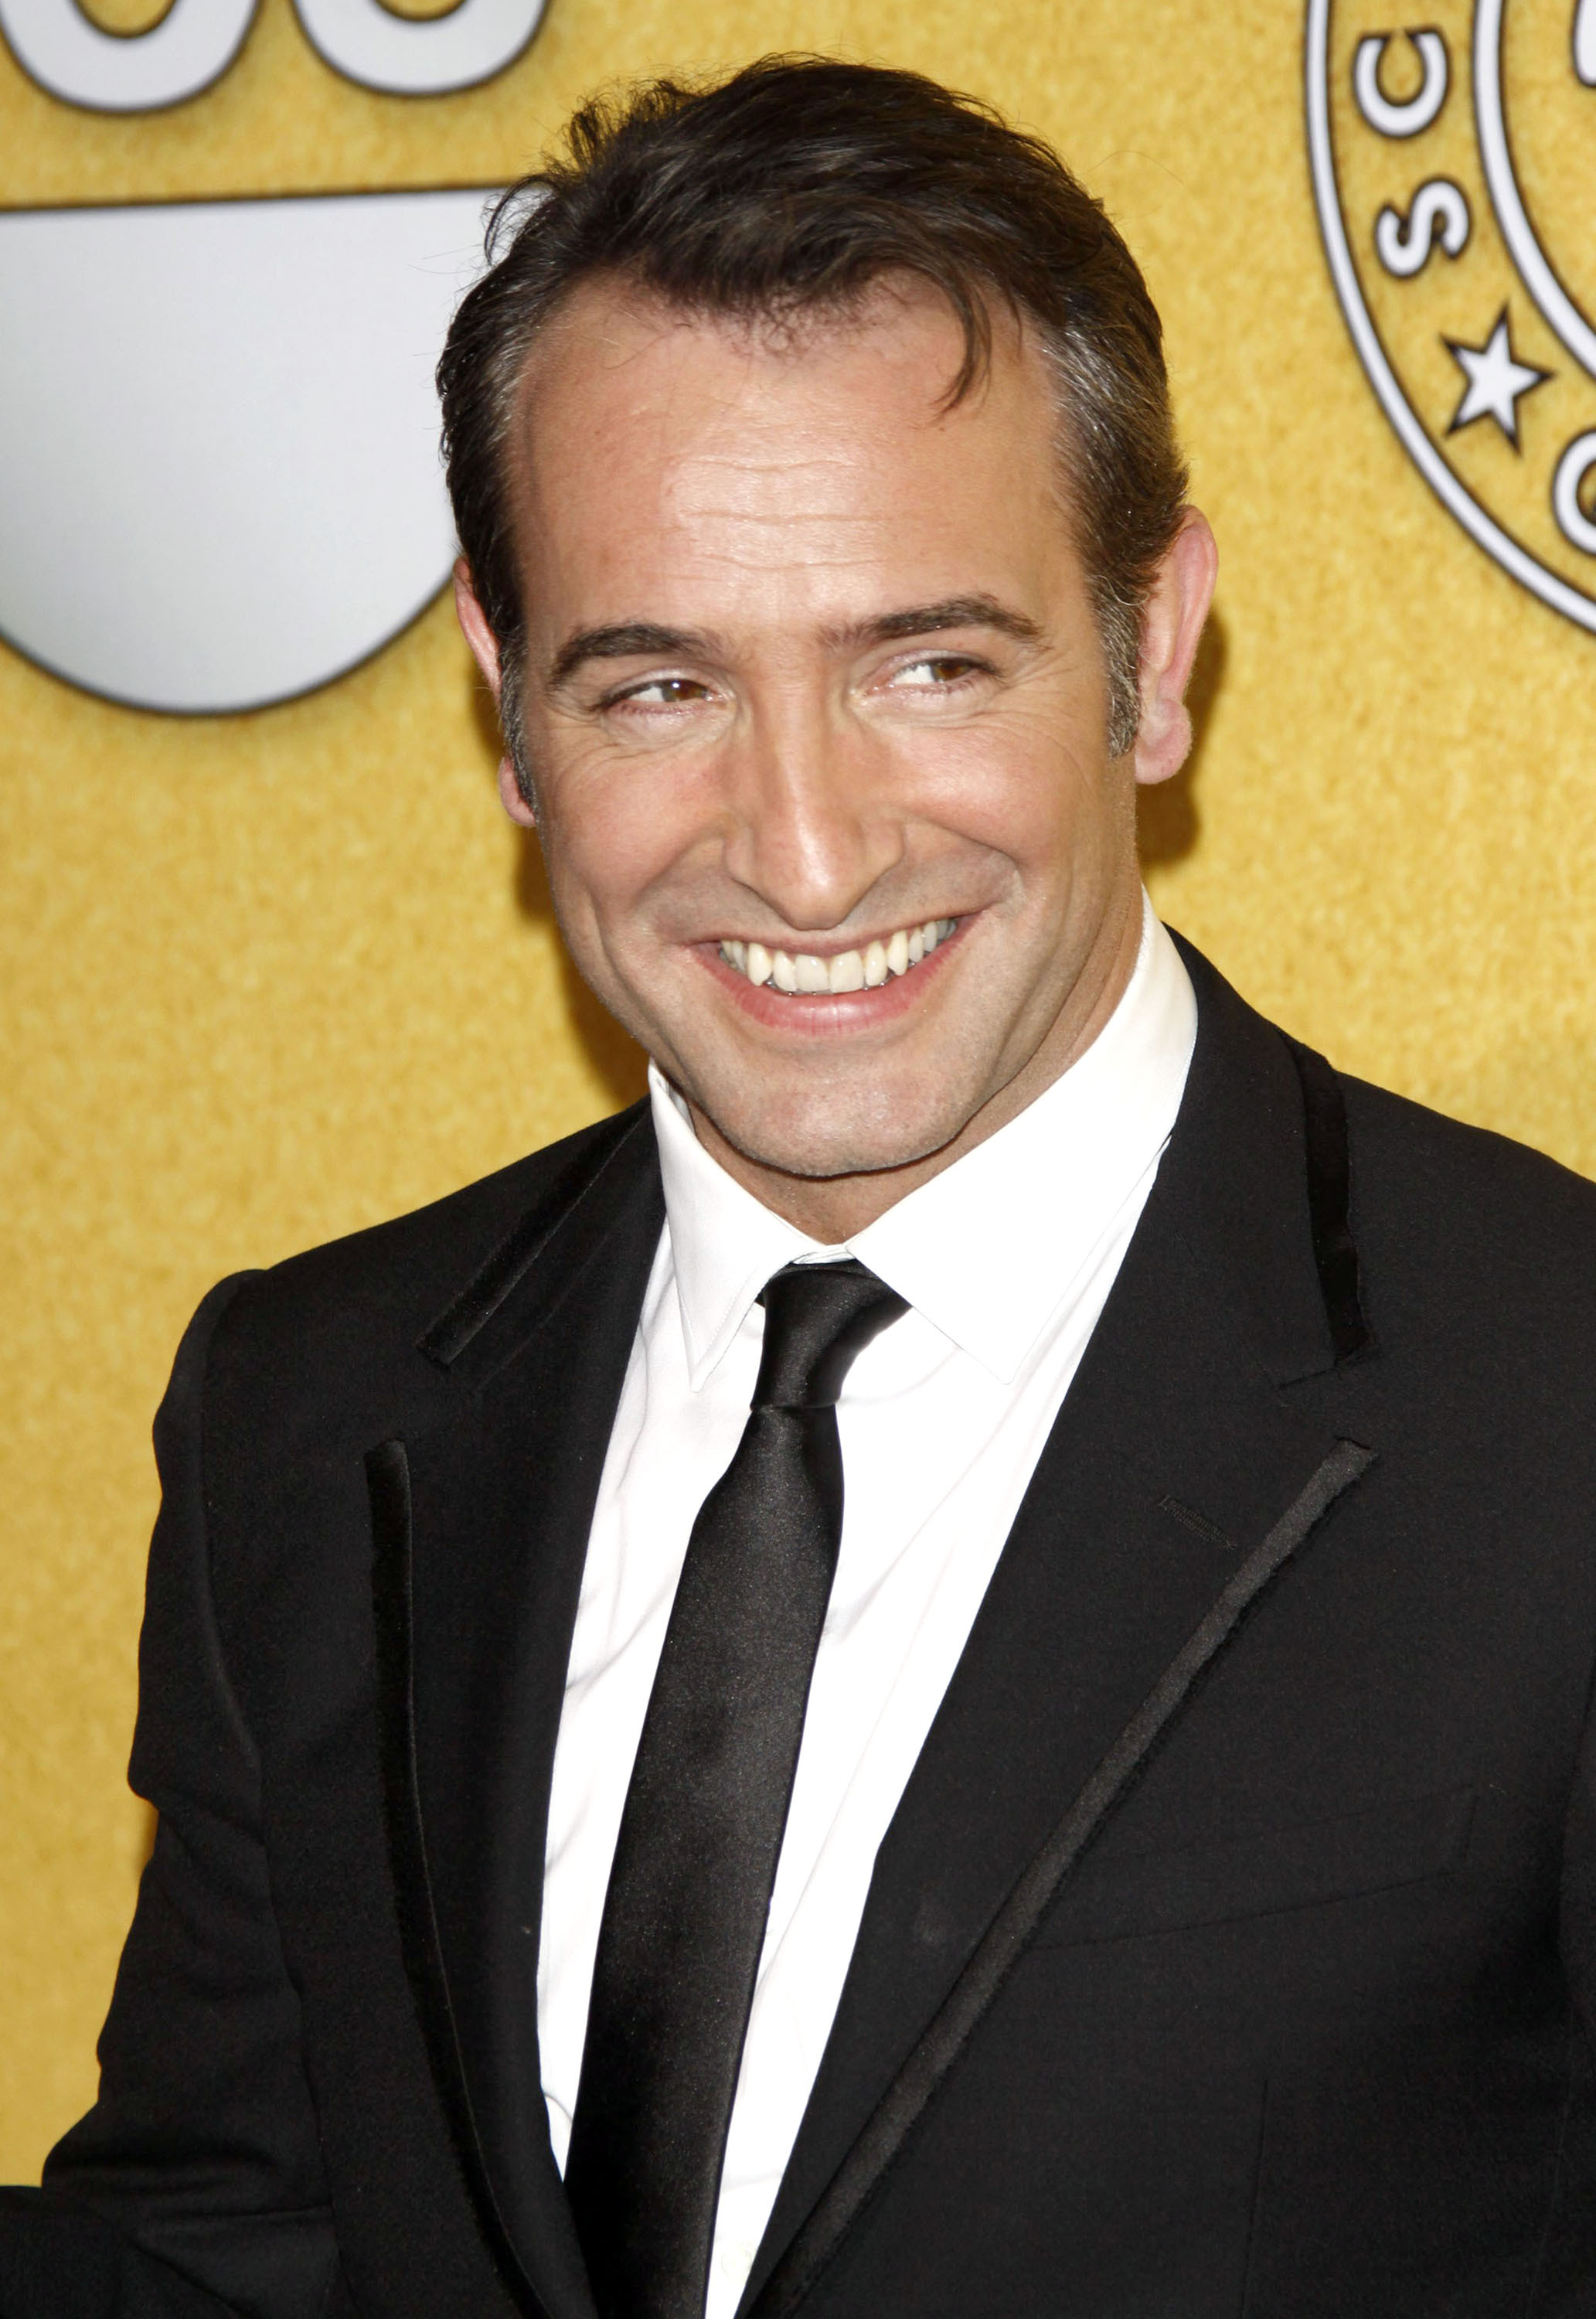 Jean dujardin jean dujardin height for Dujardin height